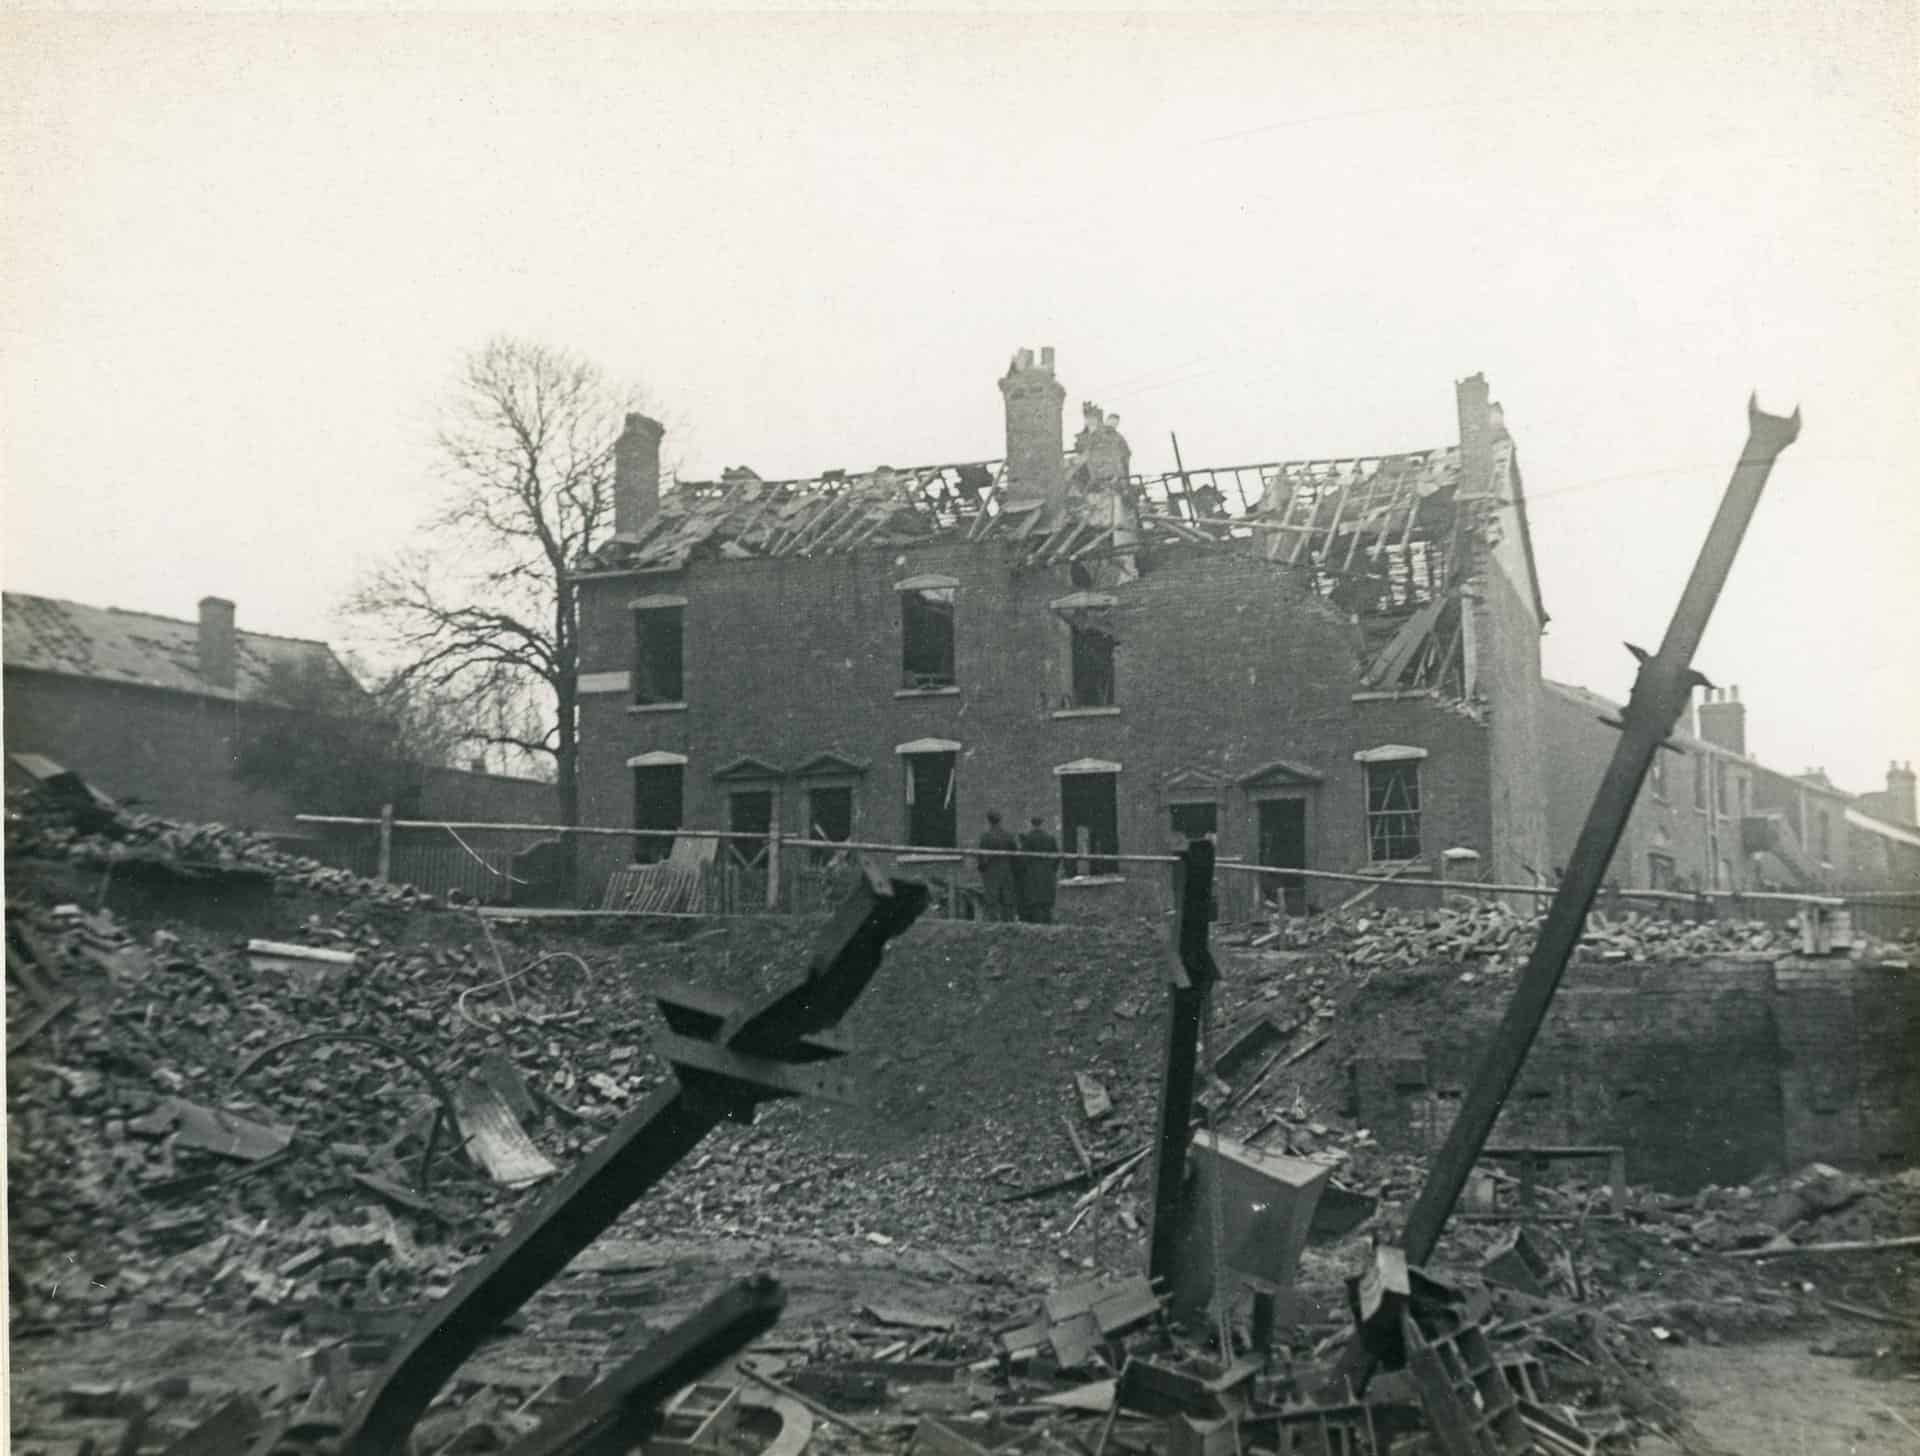 Bomb damaged houses, Smethwick. Photographer: J.W.Mortimer  Photograph used with kind permission from Sandwell Community History and Archive Service